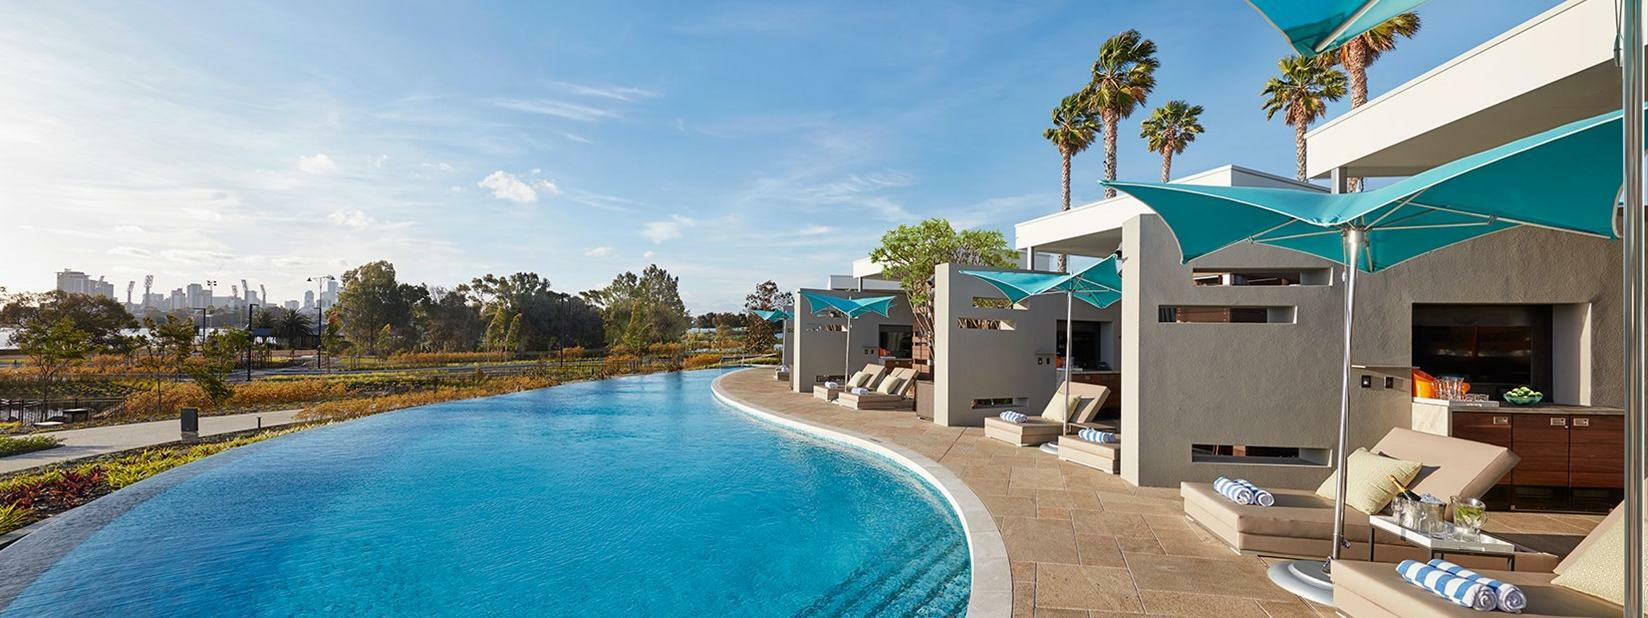 Pool and relaxation area at Crown Hotel Perth